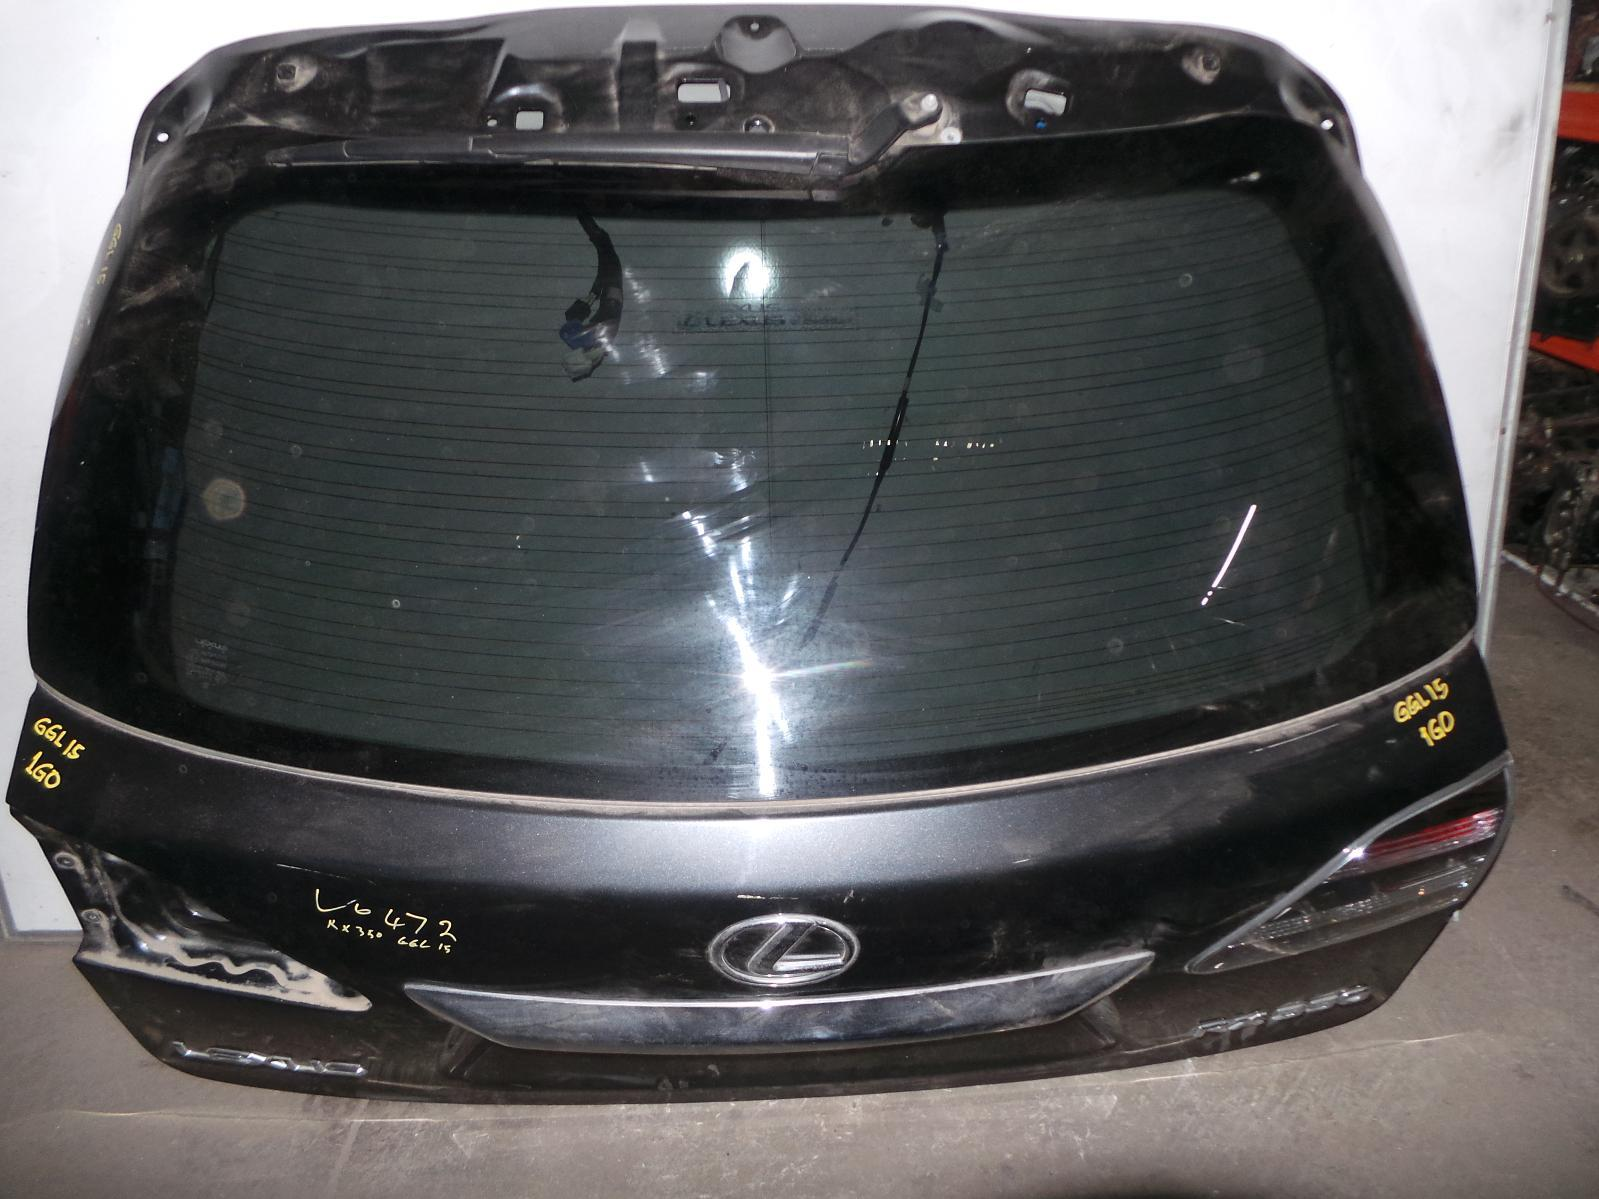 LEXUS RX SERIES, Bootlid/Tailgate, TAILGATE, GSU3/MHU3#, W/ POWER LIFTGATE TYPE, 03/06-02/09